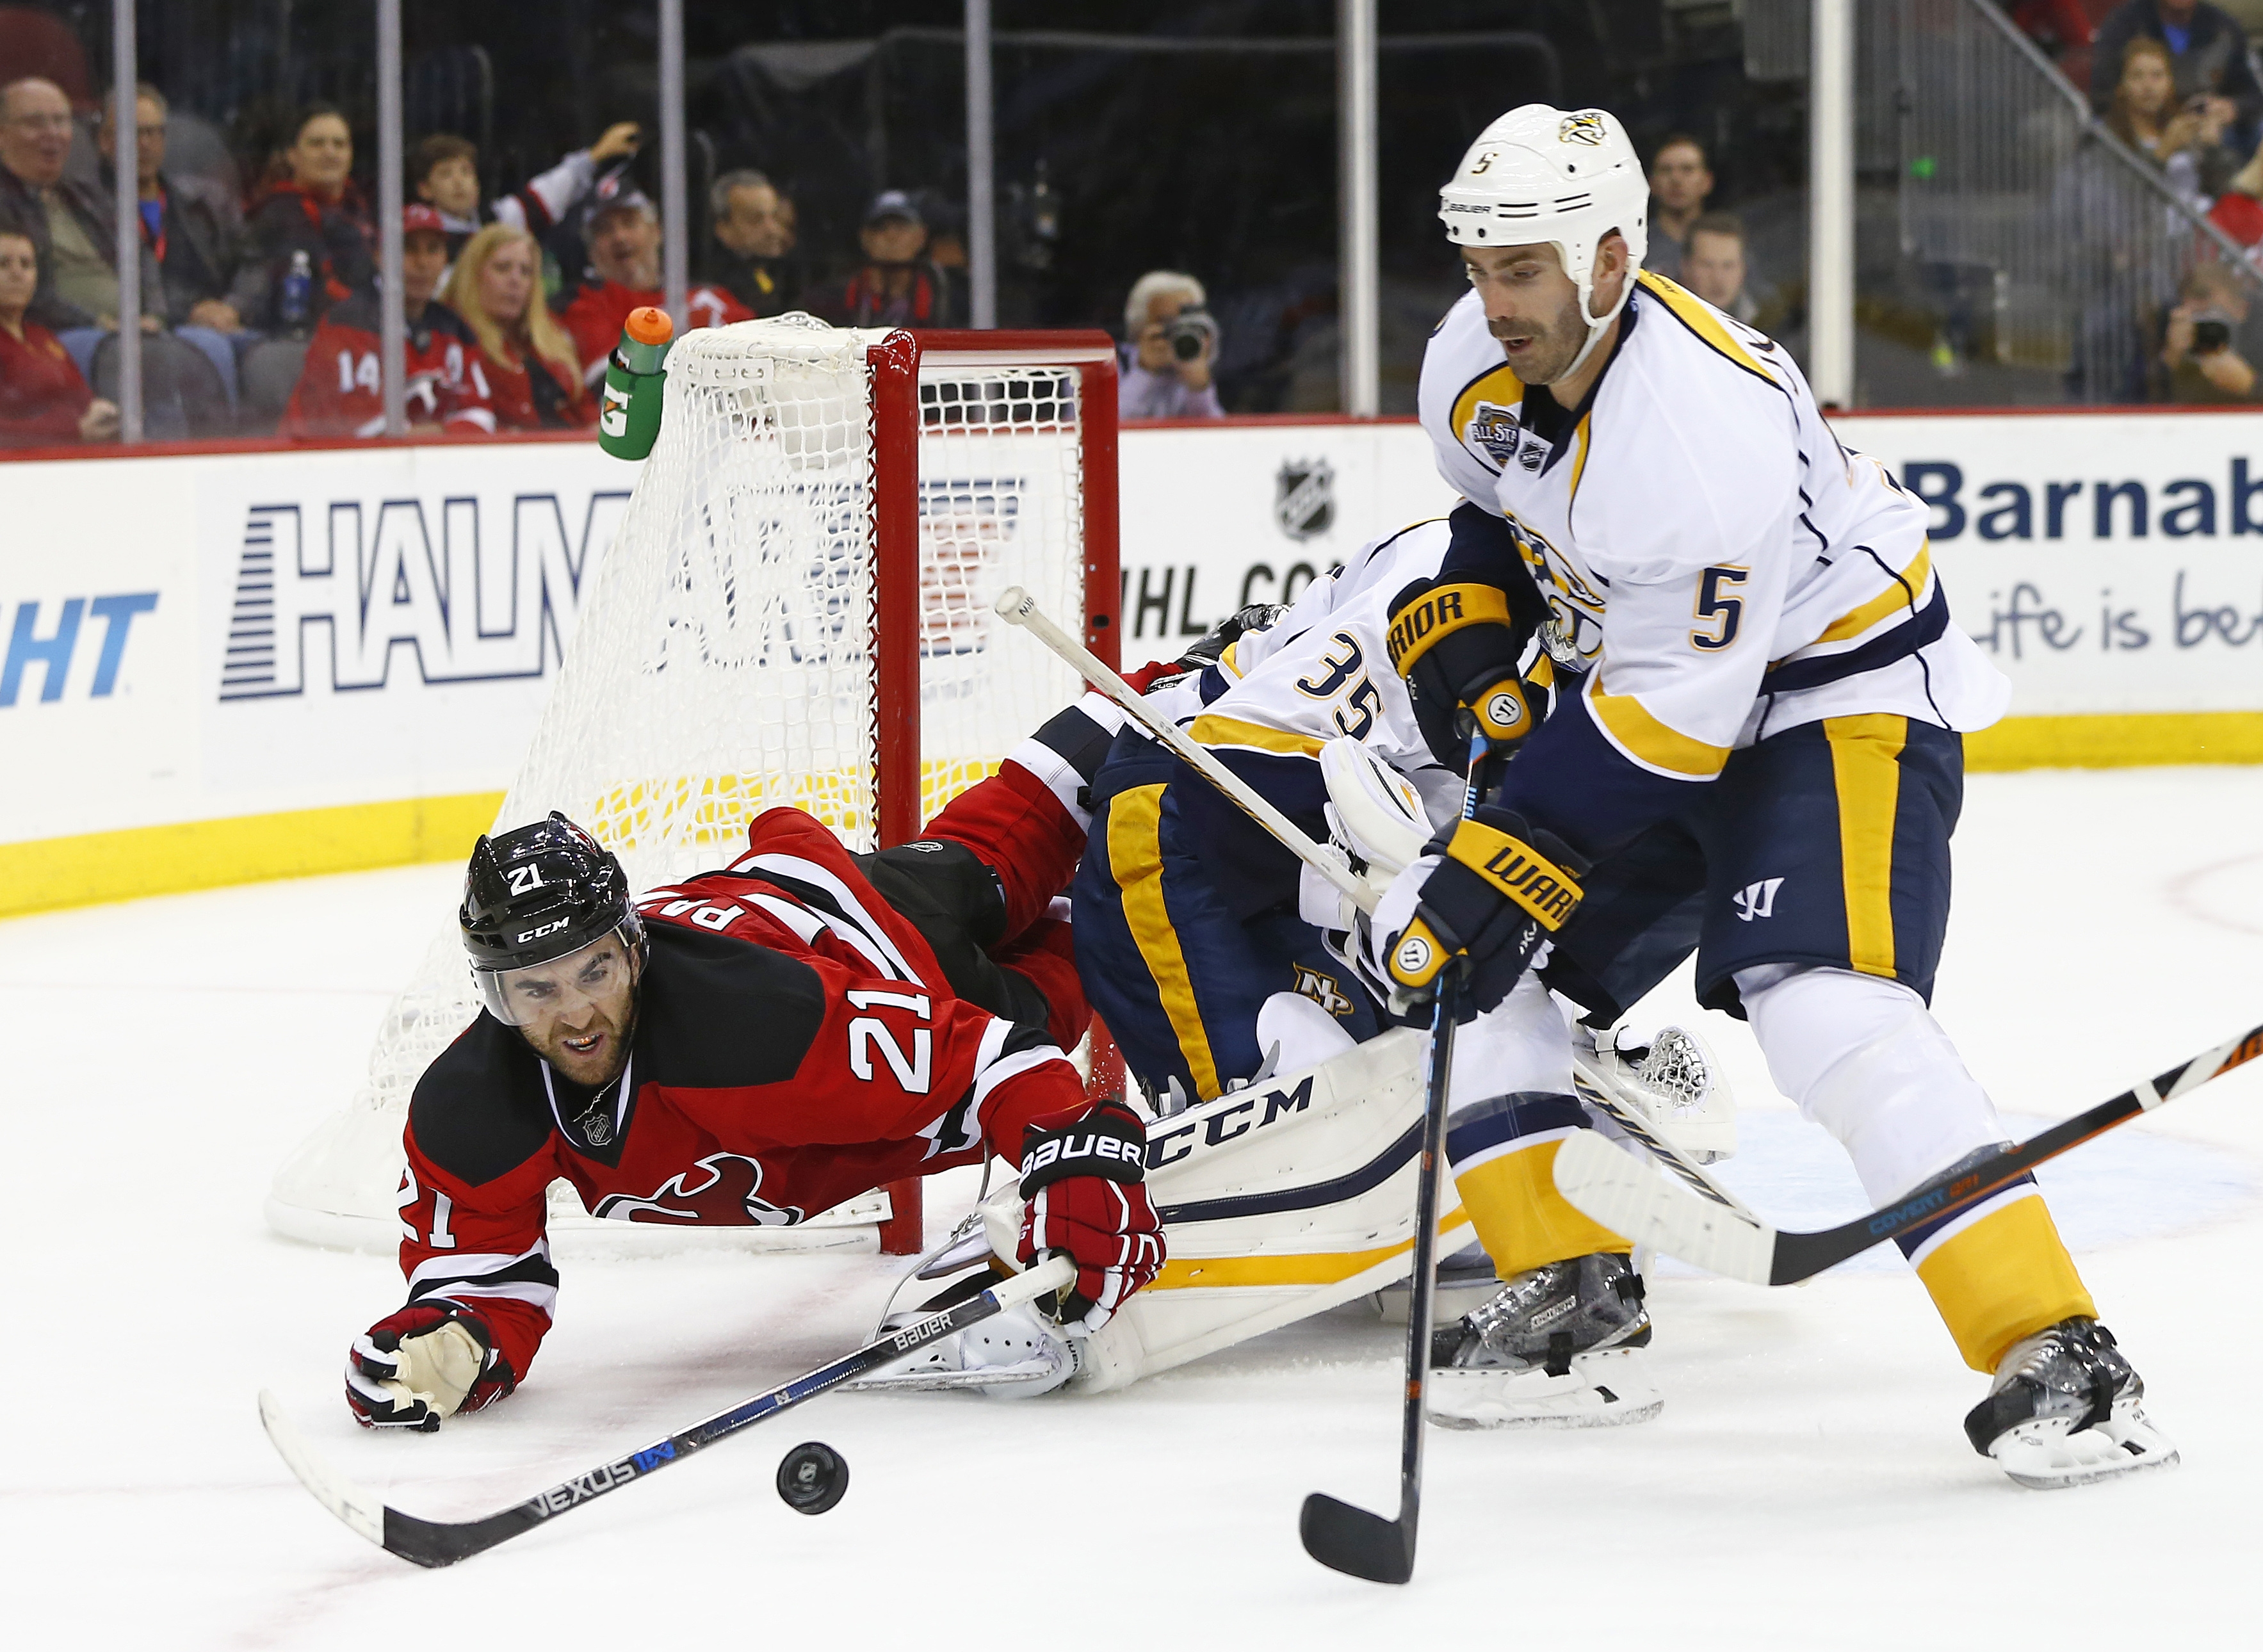 New Jersey Devils Kyle Palmieri (21) trips over Nashville Predators goalie Pekka Rinne (35) of Finland as he battles defensemen Barret Jackman (5) for the puck during the second period of an NHL hockey game in Newark, N.J., Friday, Oct. 13, 2015. (AP Phot